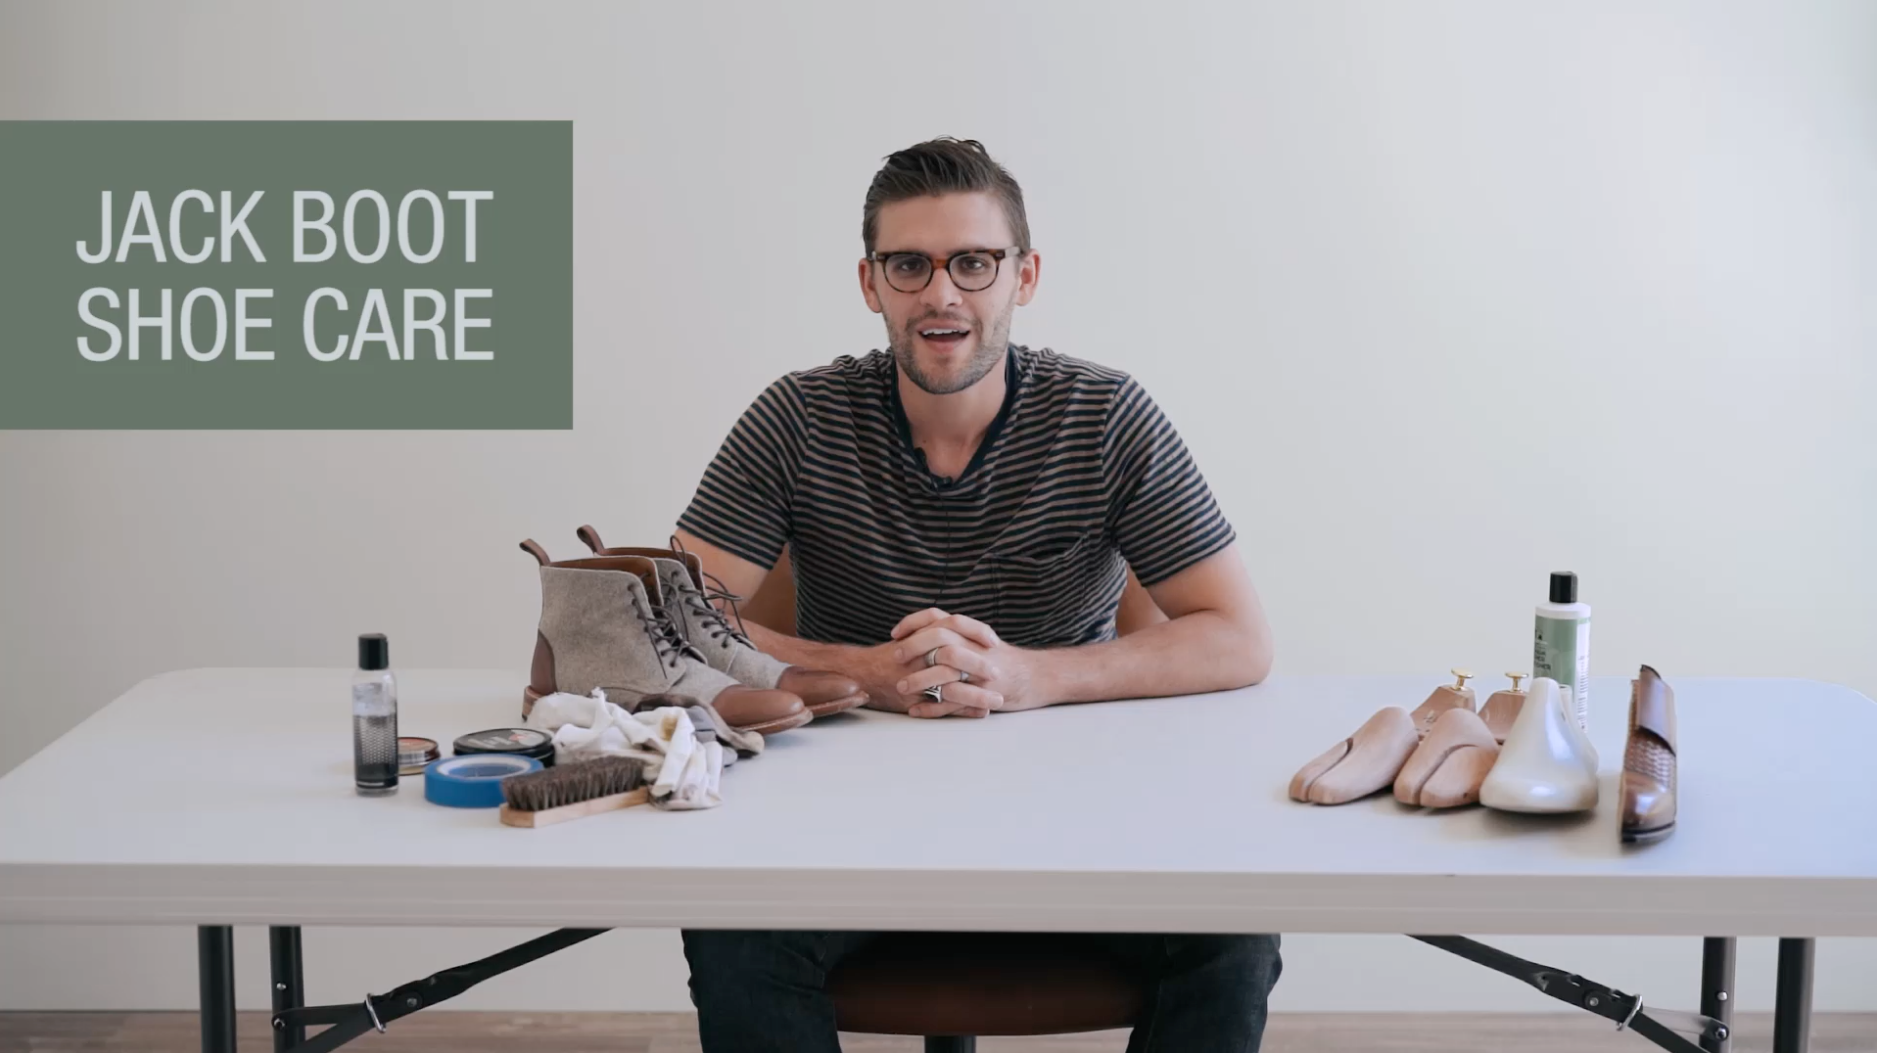 image of our founder and CEO at a table demonstrating boot care